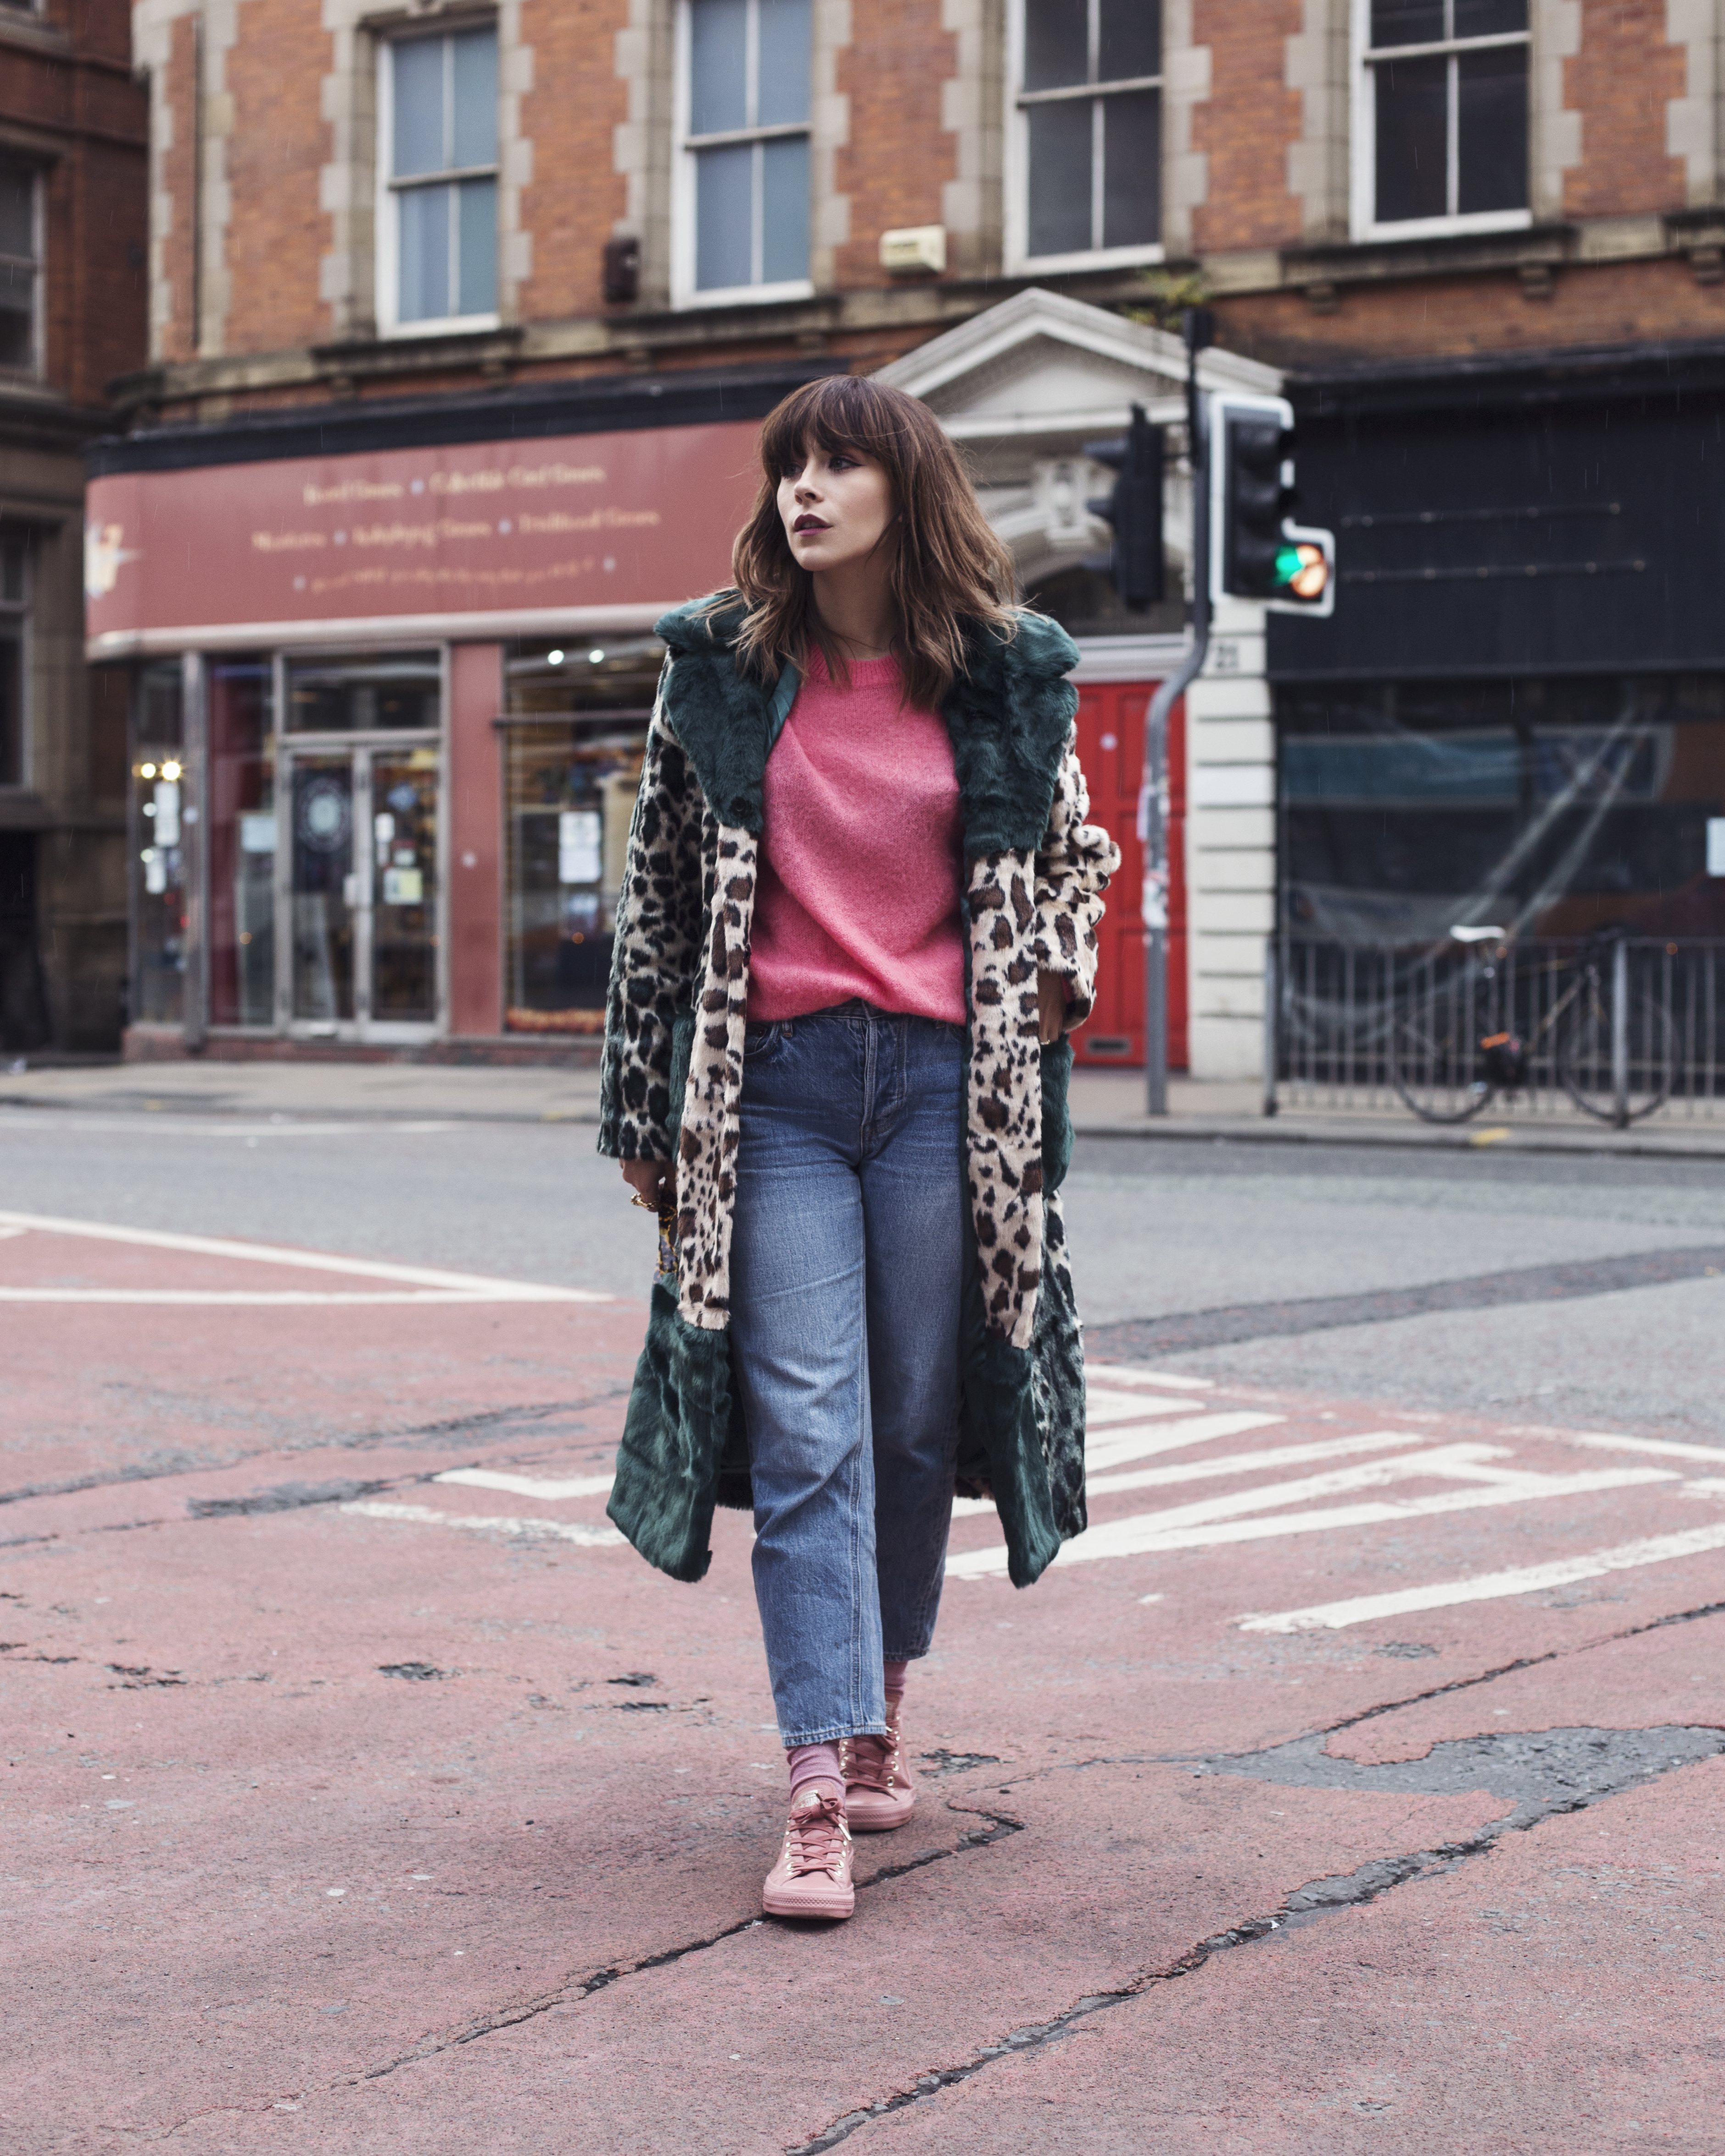 WHAT TO WEAR ON A CASUAL WEEKEND IN WINTER